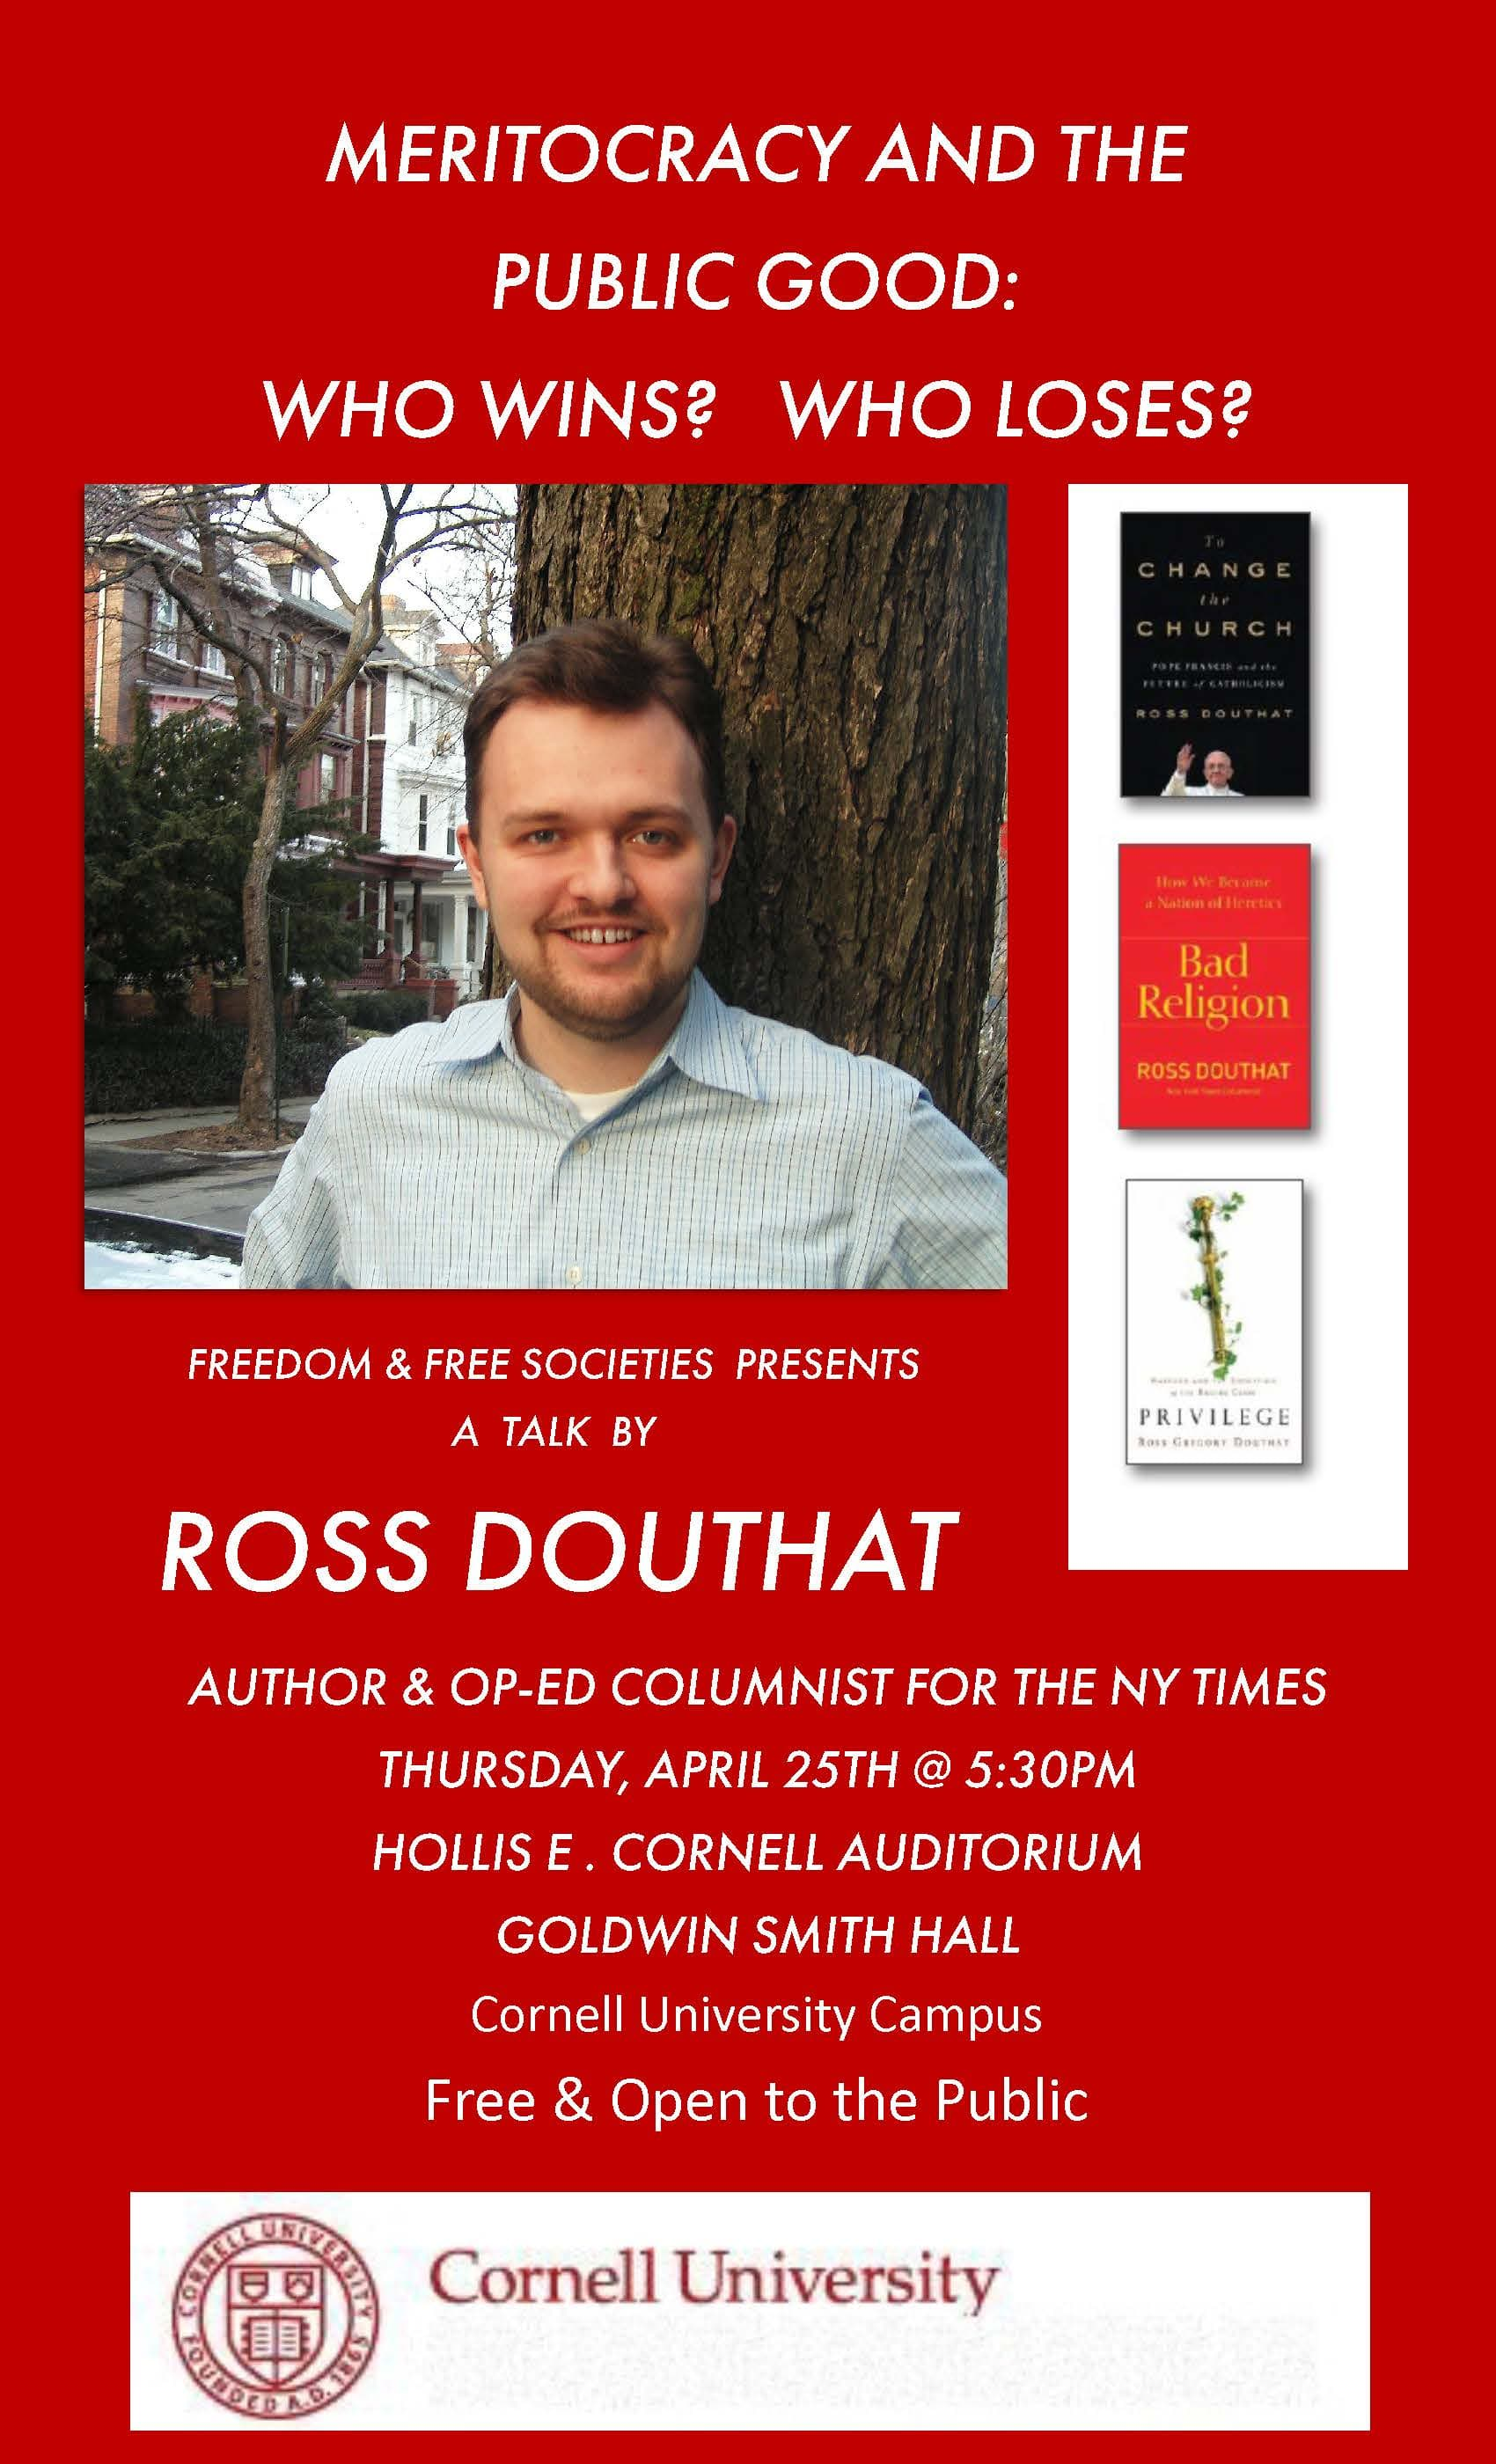 Talk with Ross Douthat